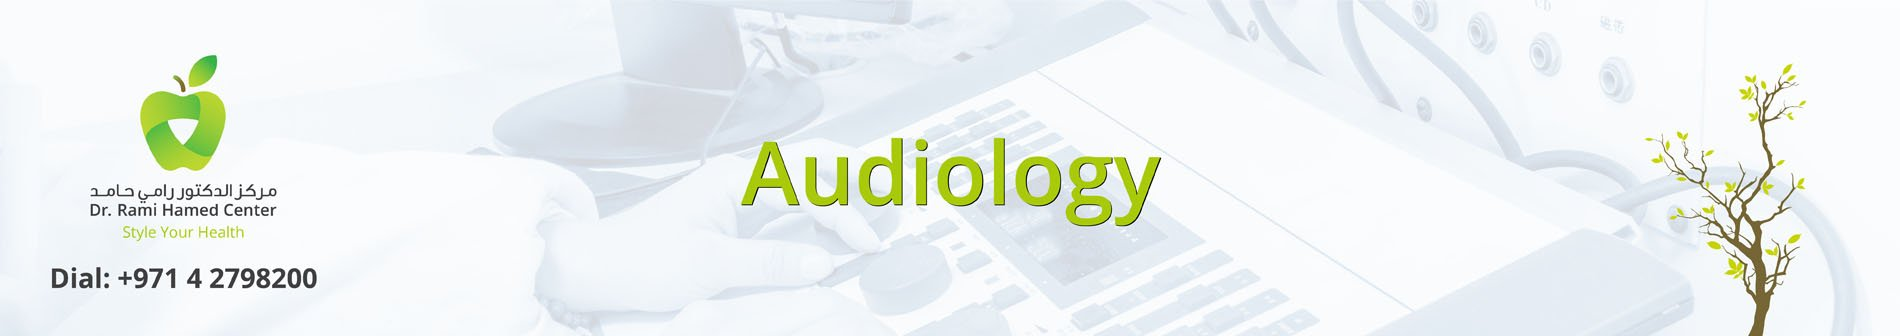 Dubai Audiology Clinic